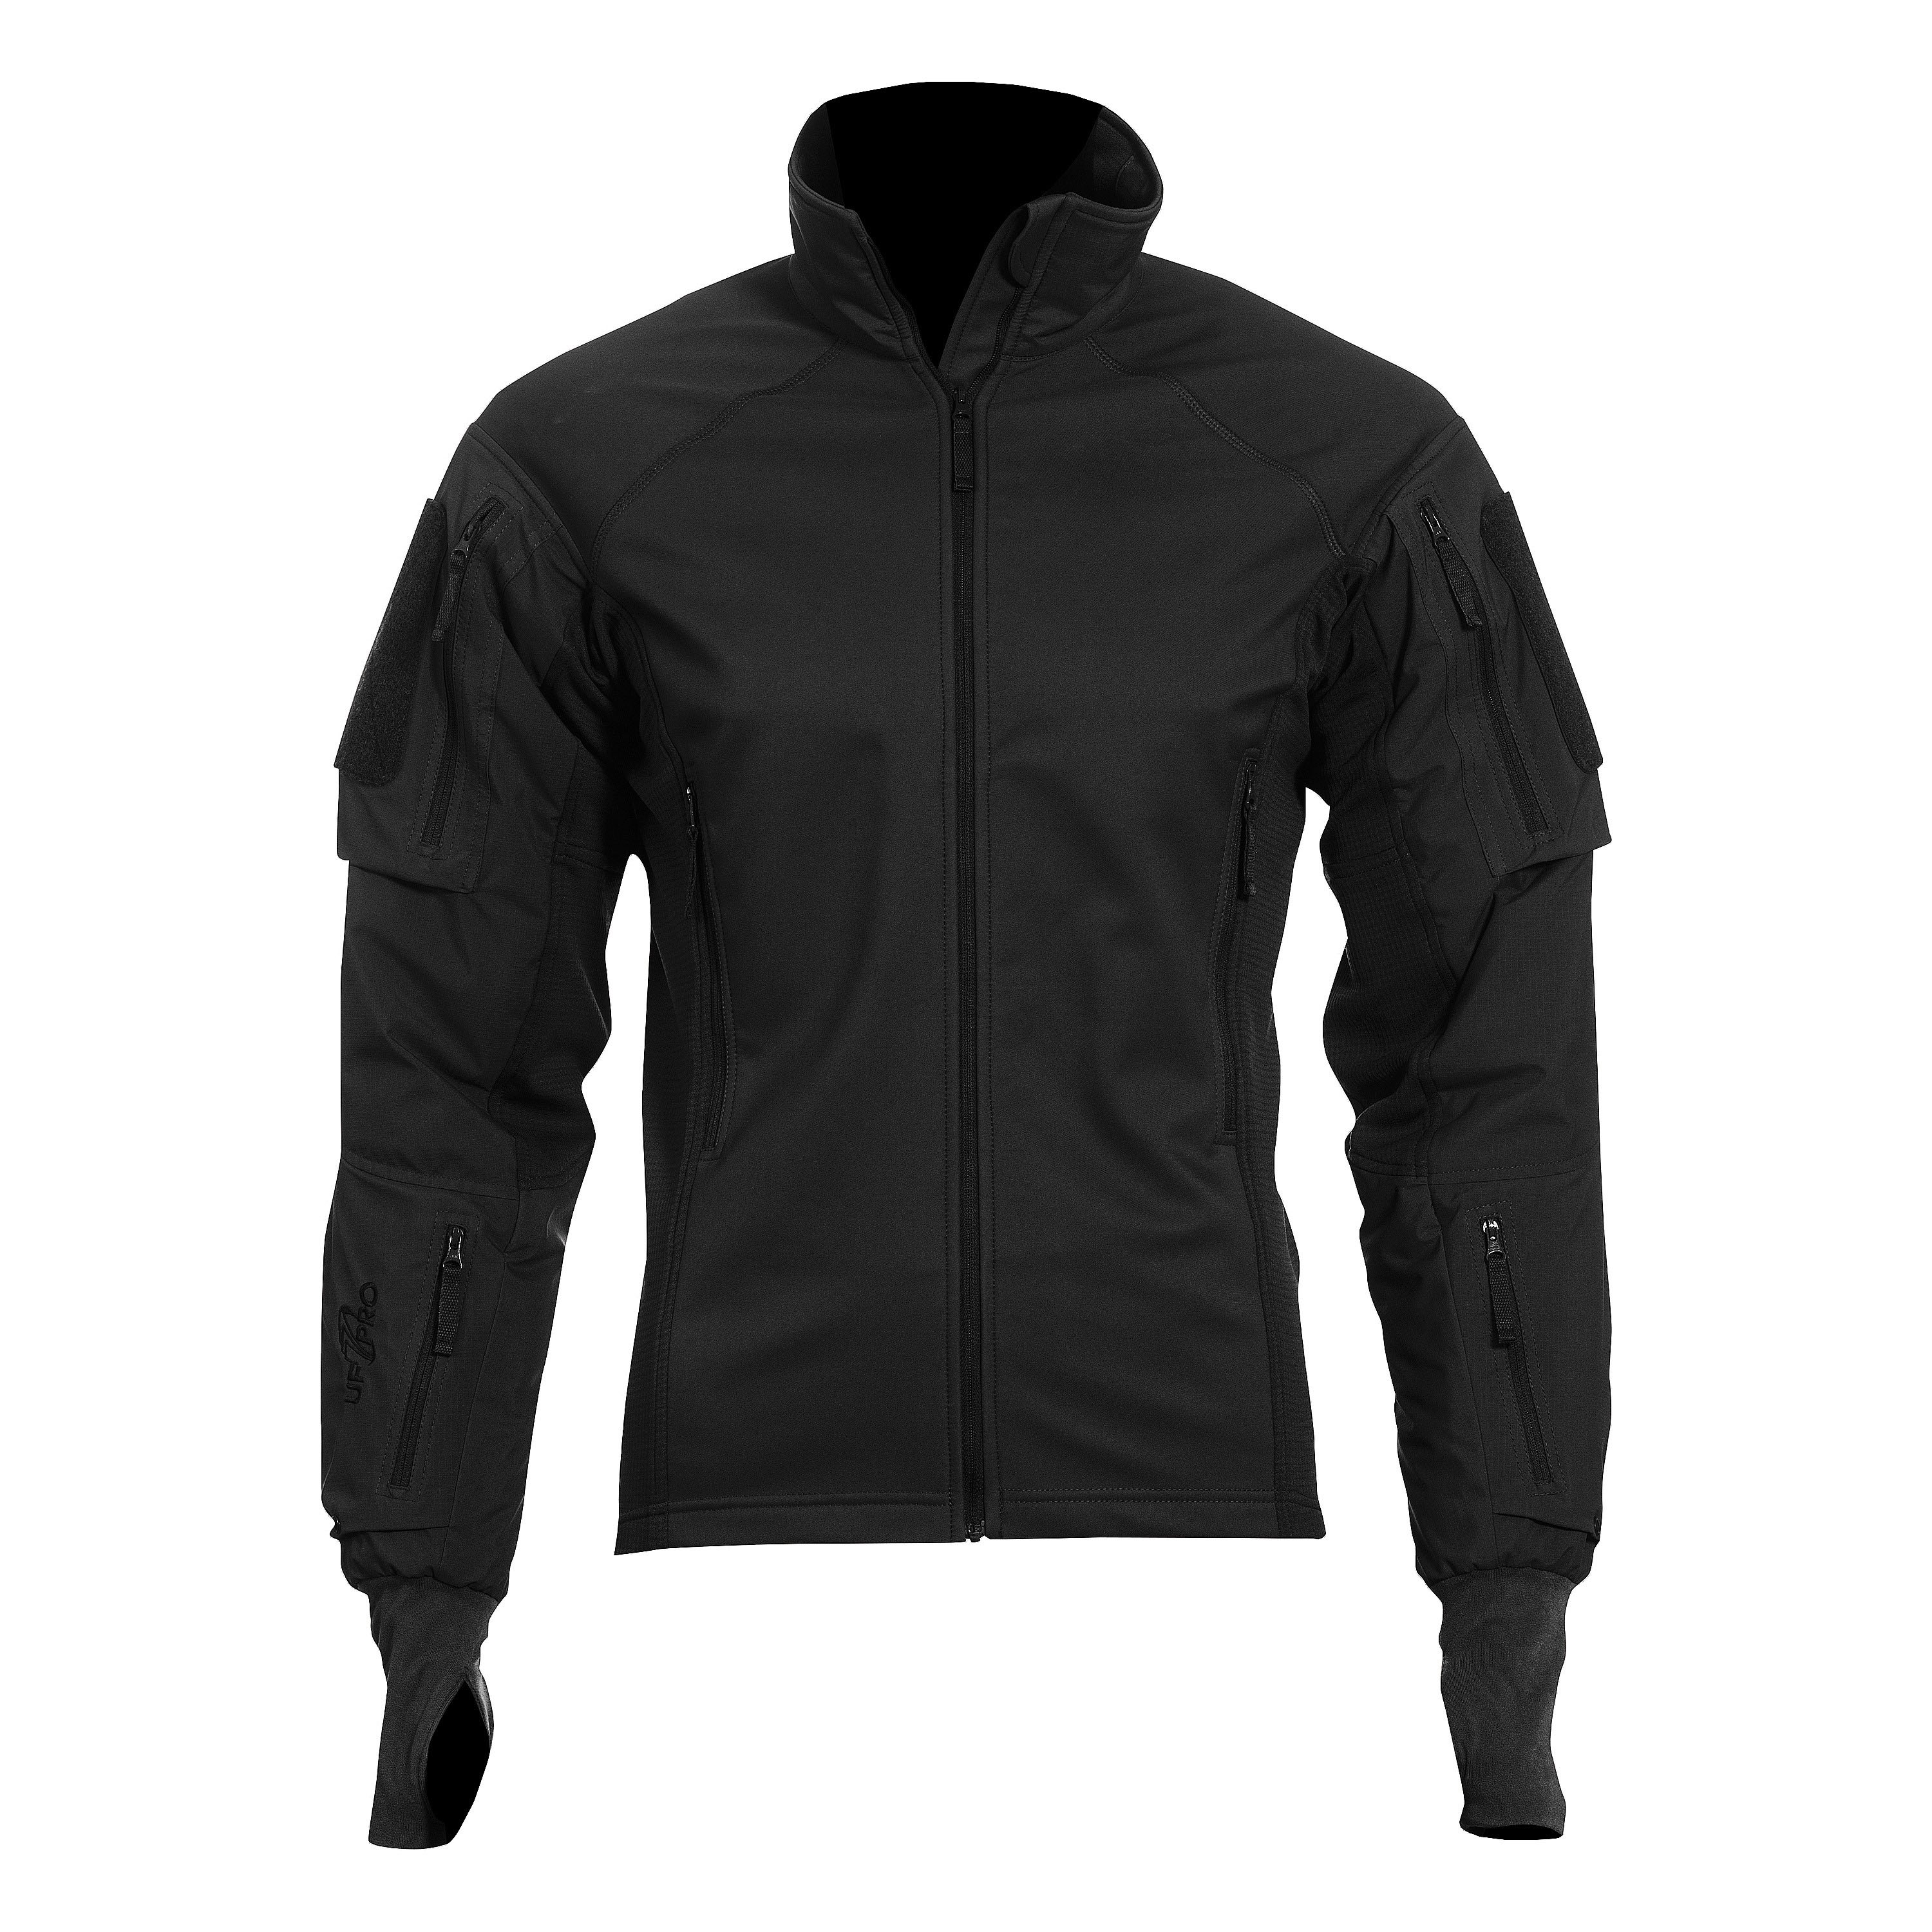 UF Pro Jacket Delta AcE Plus black